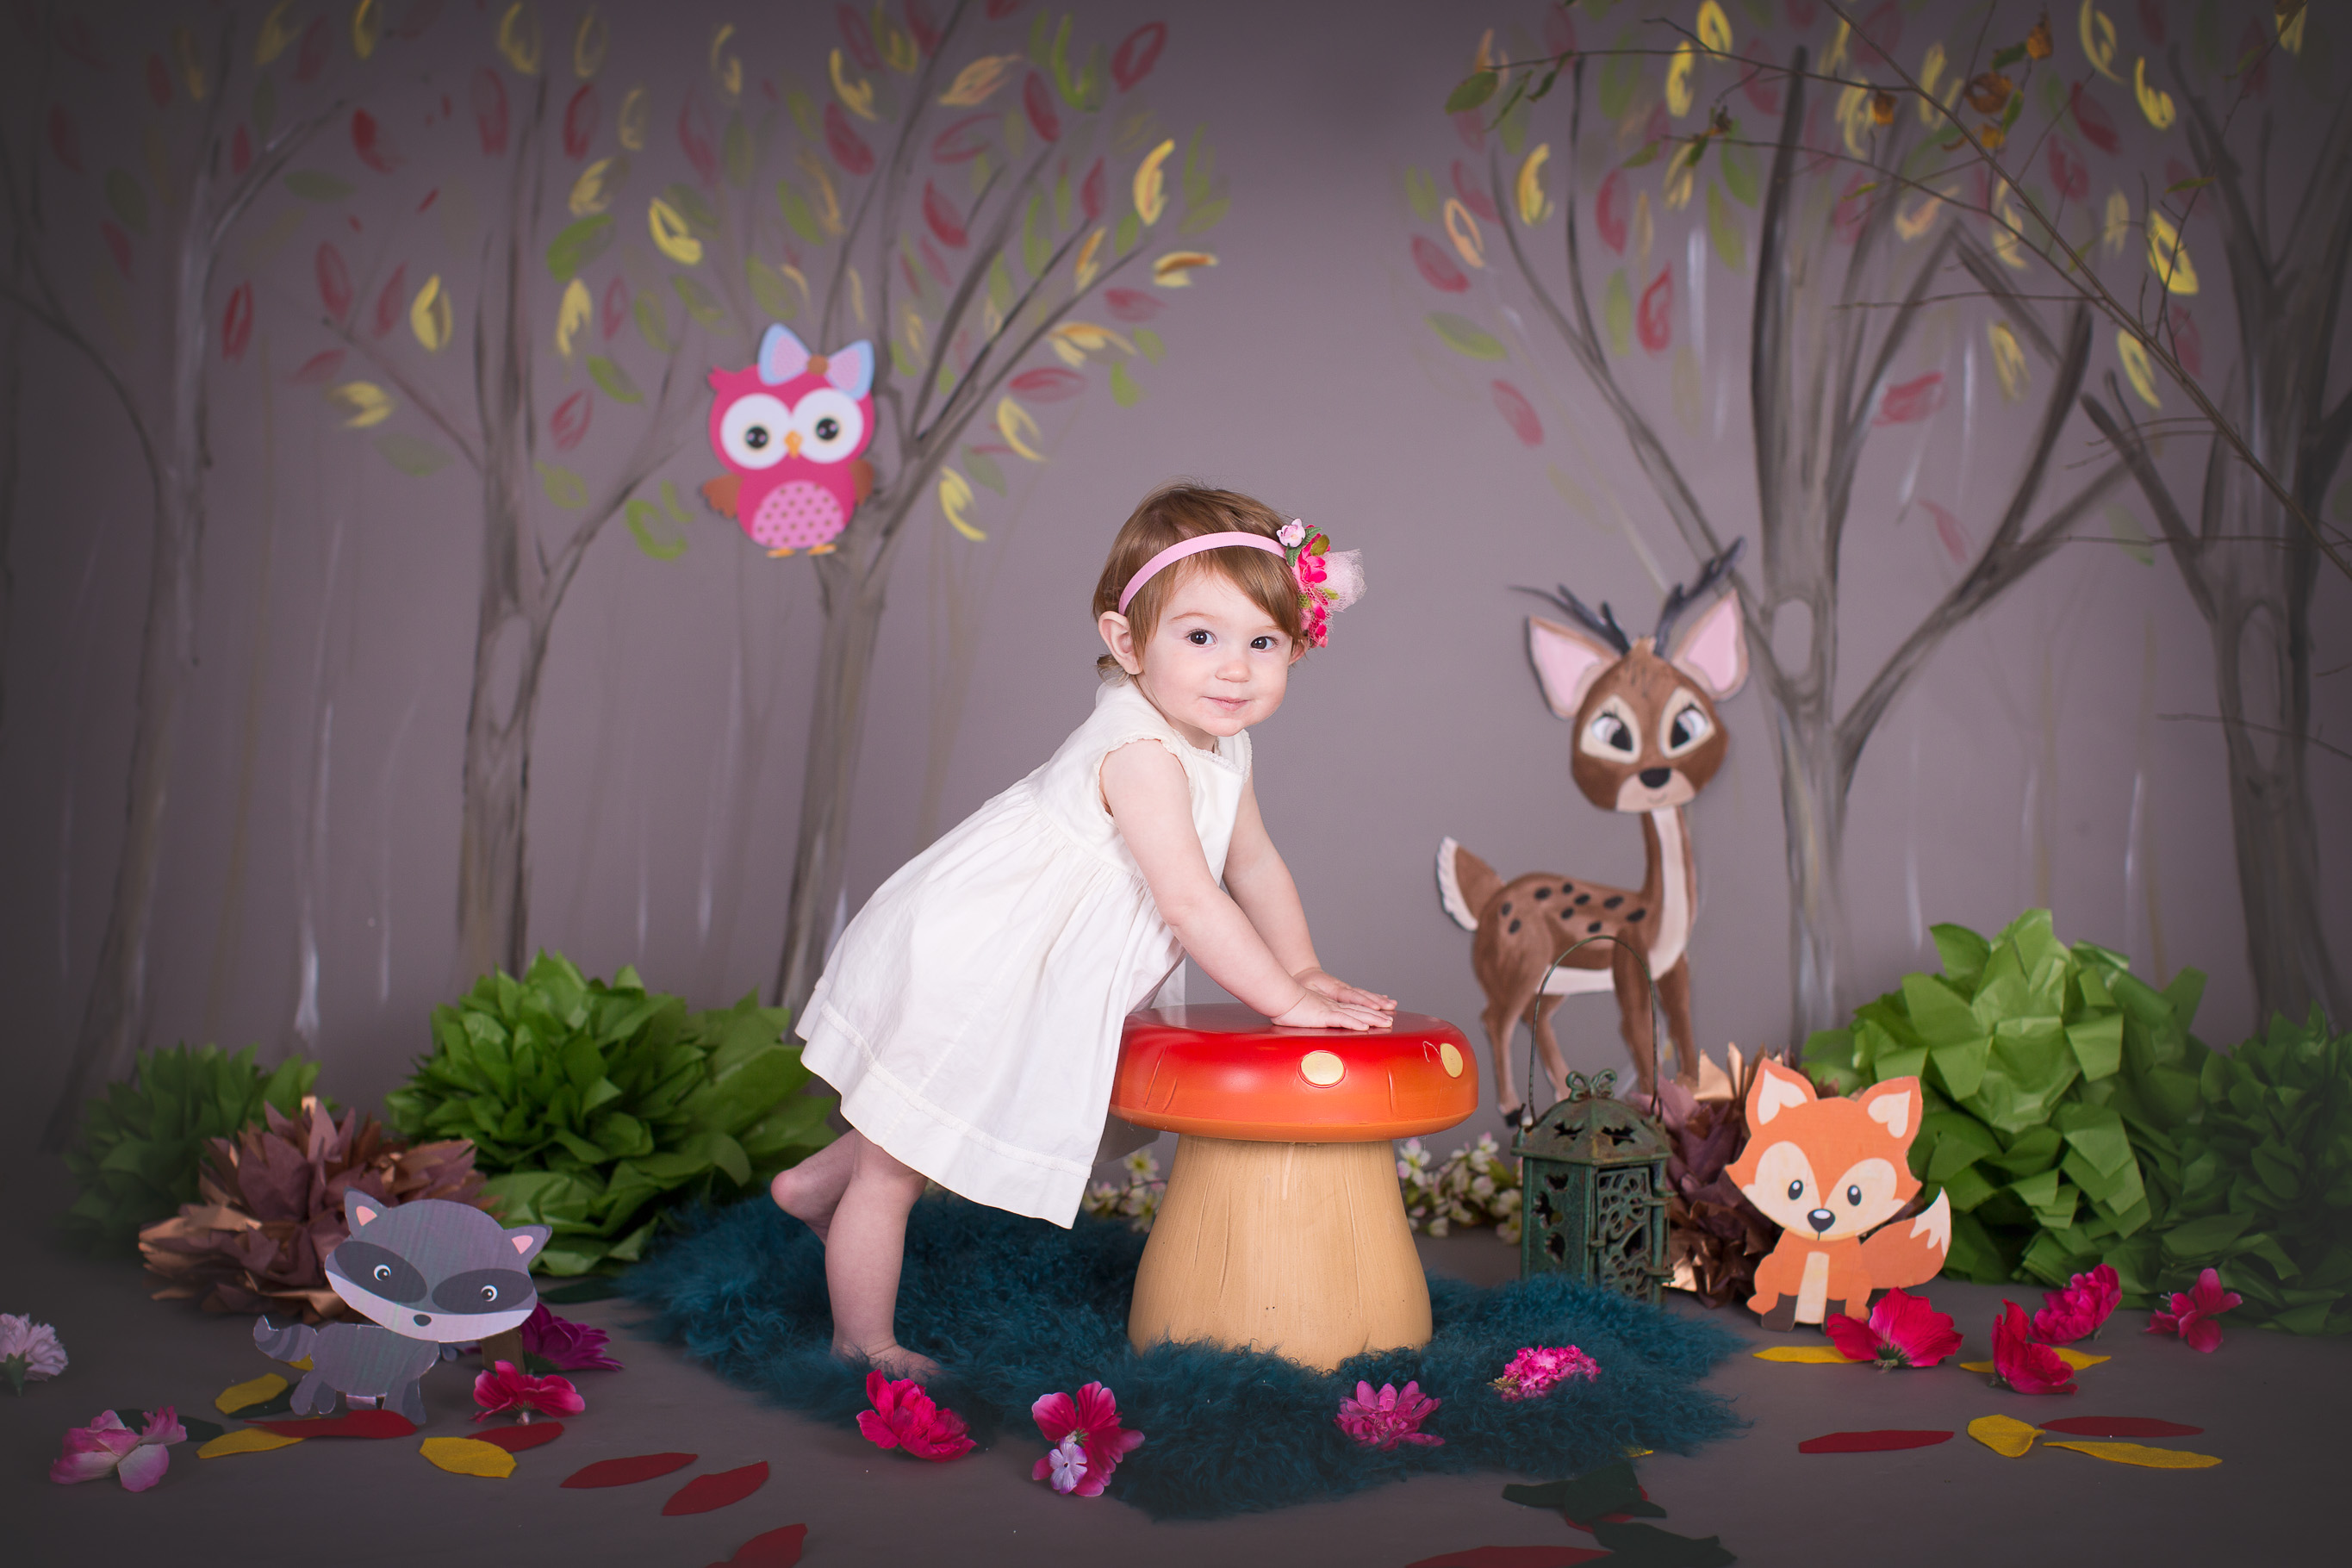 Image of little girl wearing white dress leaning on toadstool surrounded by woodland cake smash set up